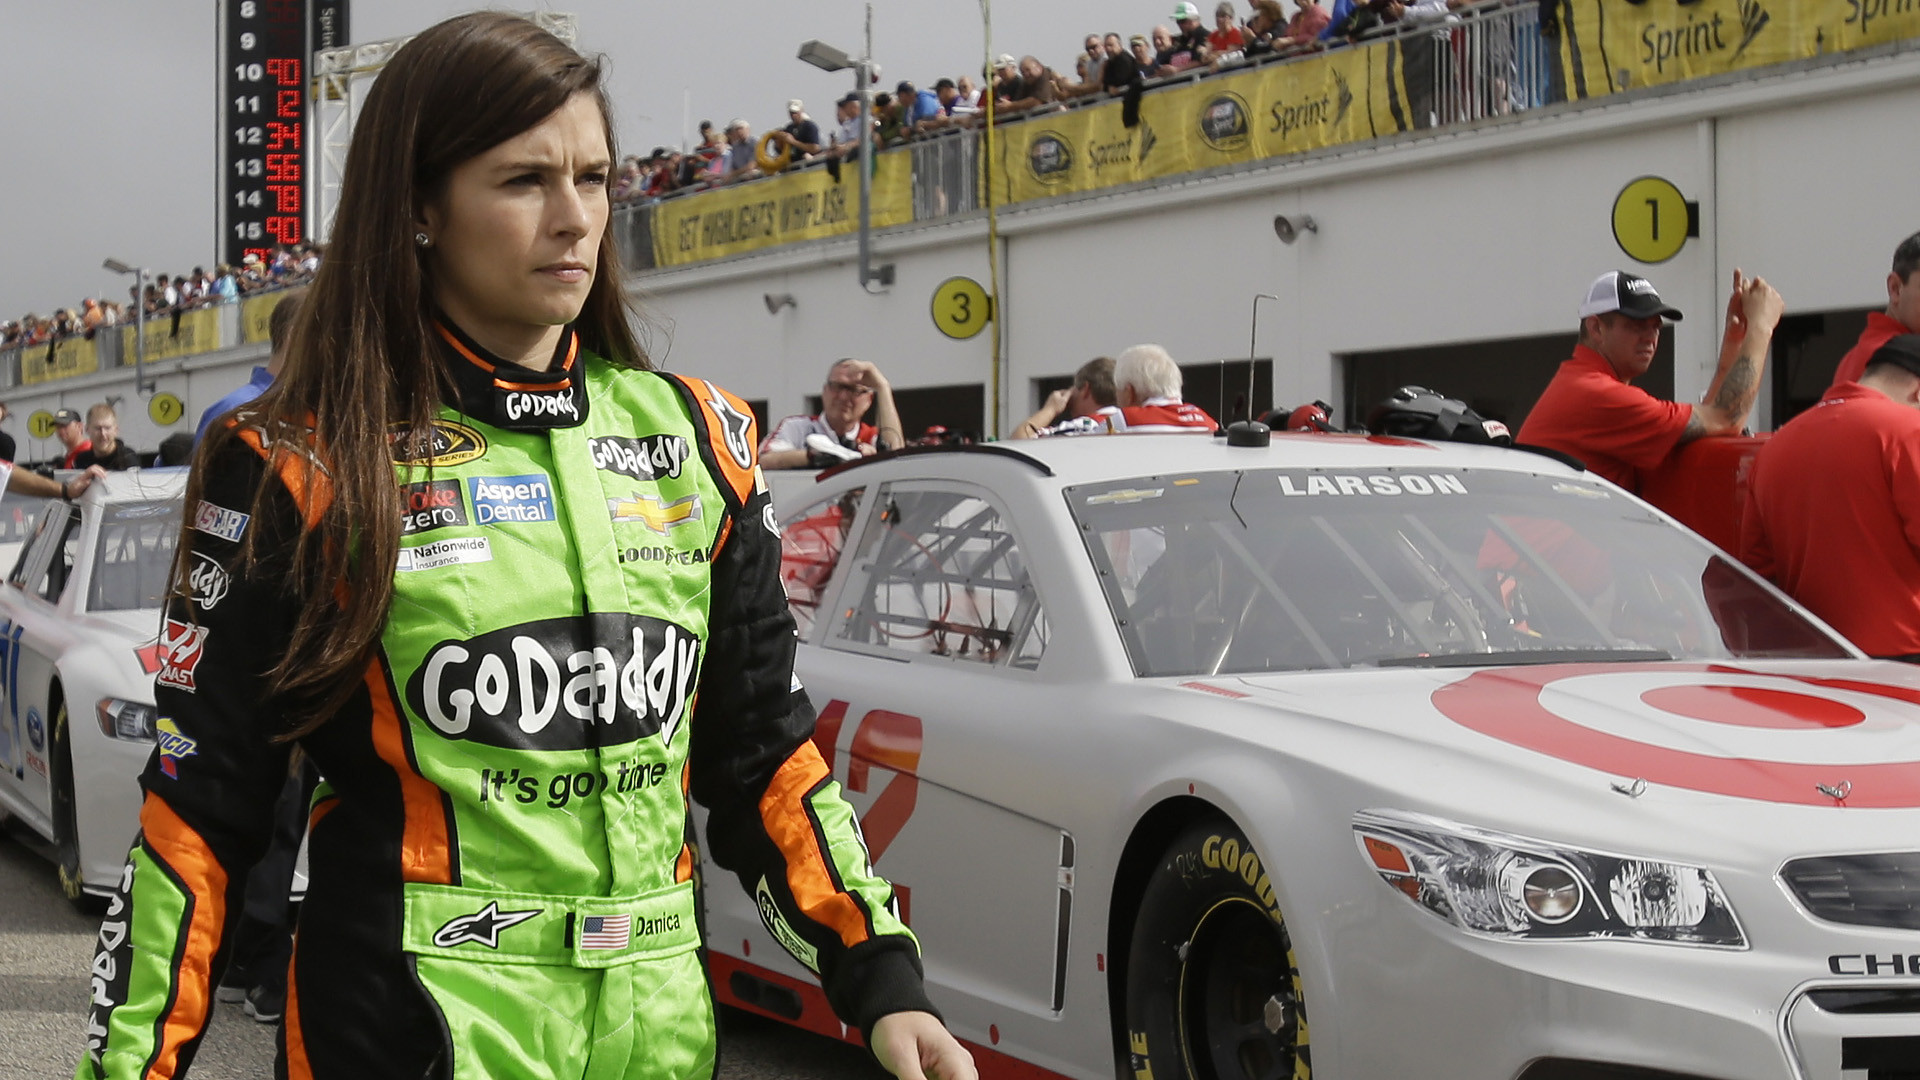 1920x1080 Danica Patrick faces big question: Will she ever win a Cup race? | NASCAR |  Sporting News